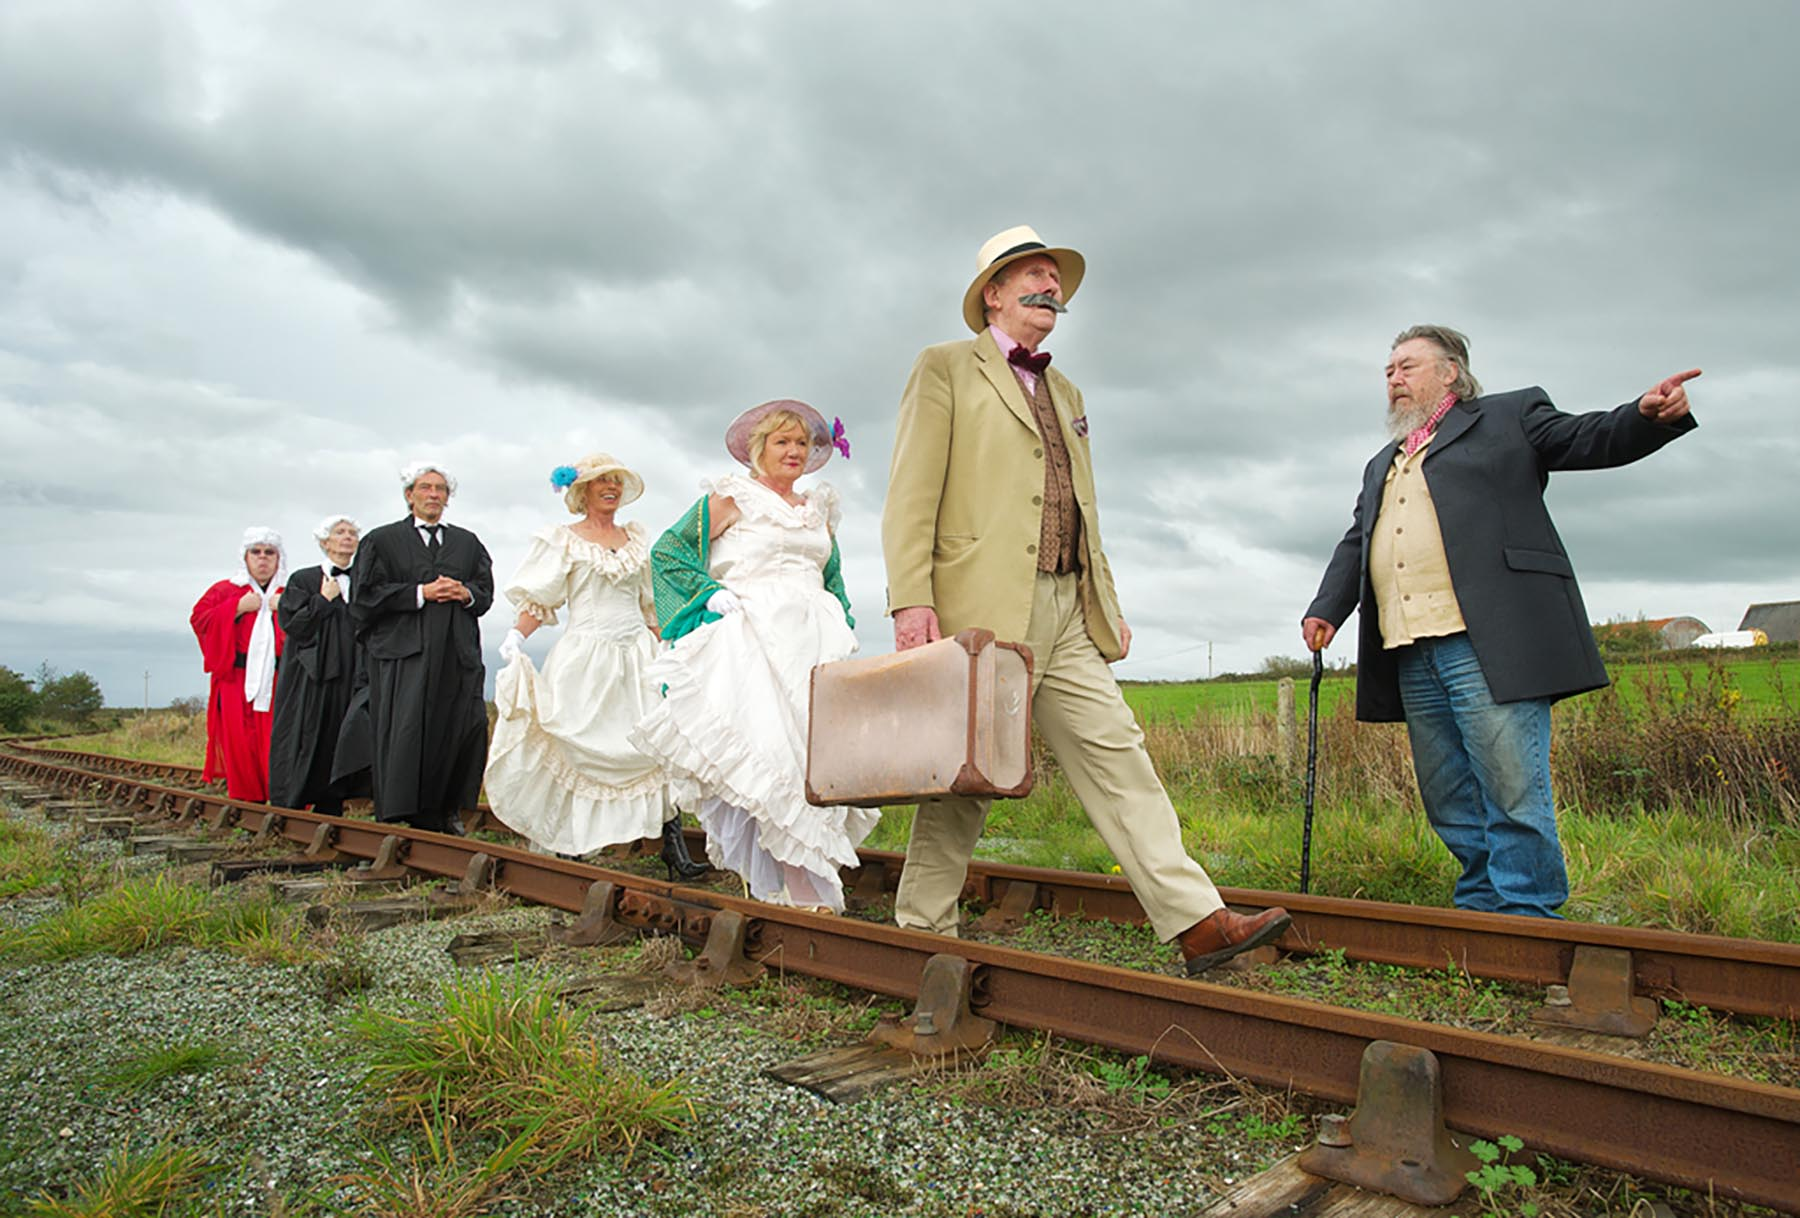 On the right track: Members of the Junk Shun Productions in their Laughter In Court costumes at a photocall in Moyasta Junction to promote the Kilkee Playwright Festival, which runs on November 1 and 2.  From front to rear;  Richard Gair, manager West Clare railway, as Mr Sullivan, Charles Clancy as Percy French, Theresa Hartigan and Margaret Whelan as Miss Malone A and Miss Malone B,  Paul Clegg as Clerk, Brian Comerford as QC Murphy, and Jim McNamara as Judge Kelly.  Photograph by John Kelly